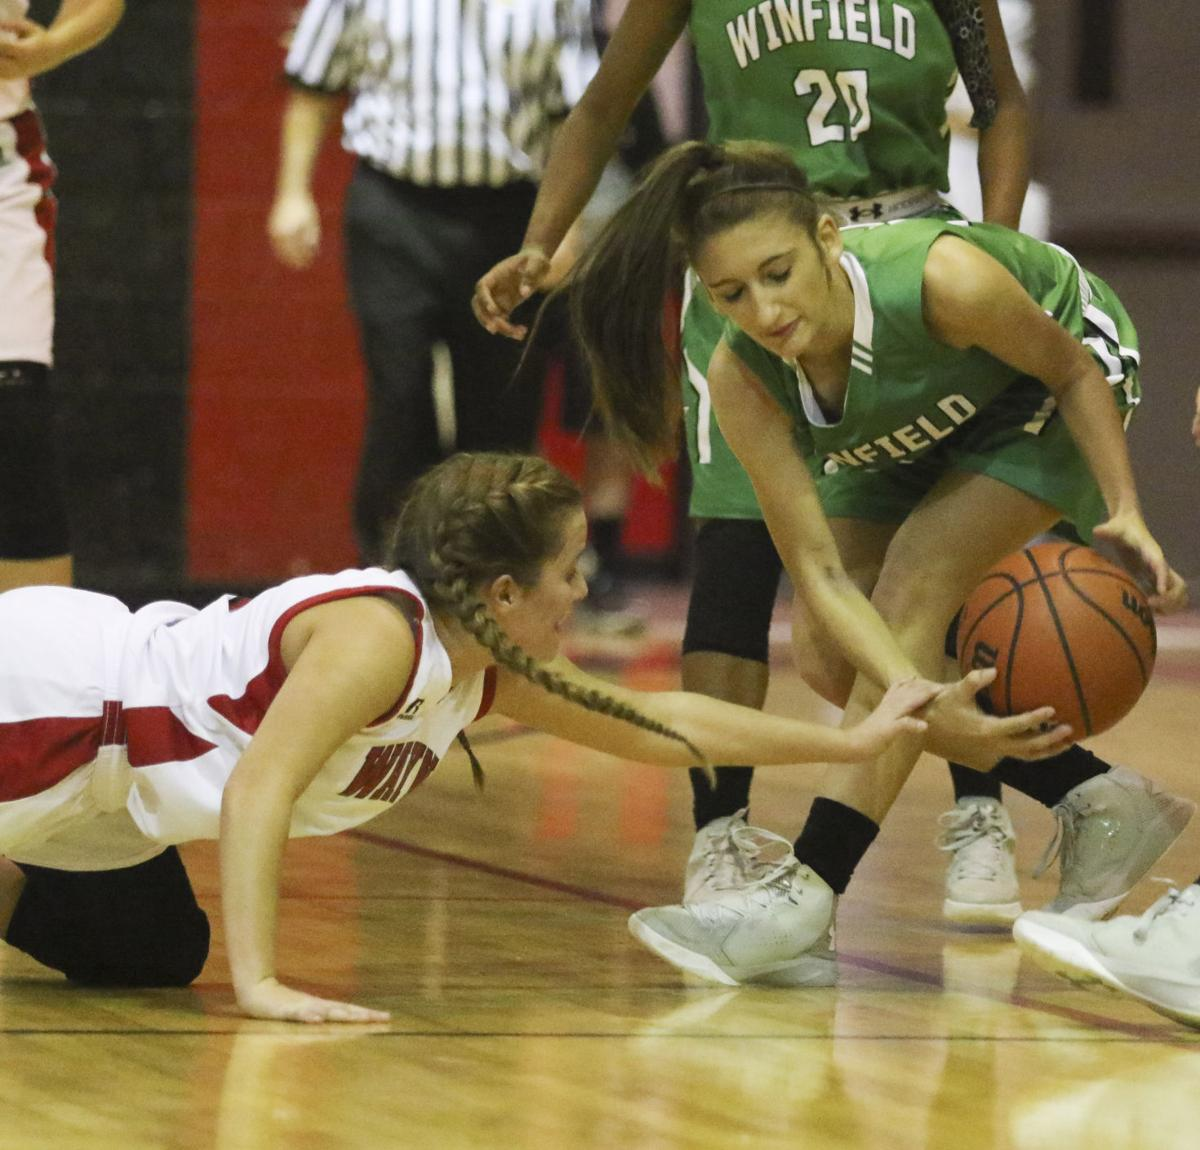 west winfield girls Get the latest mount markham high school girls basketball news, rankings, schedules, stats, scores, results, athletes info, and more at syracusecom.